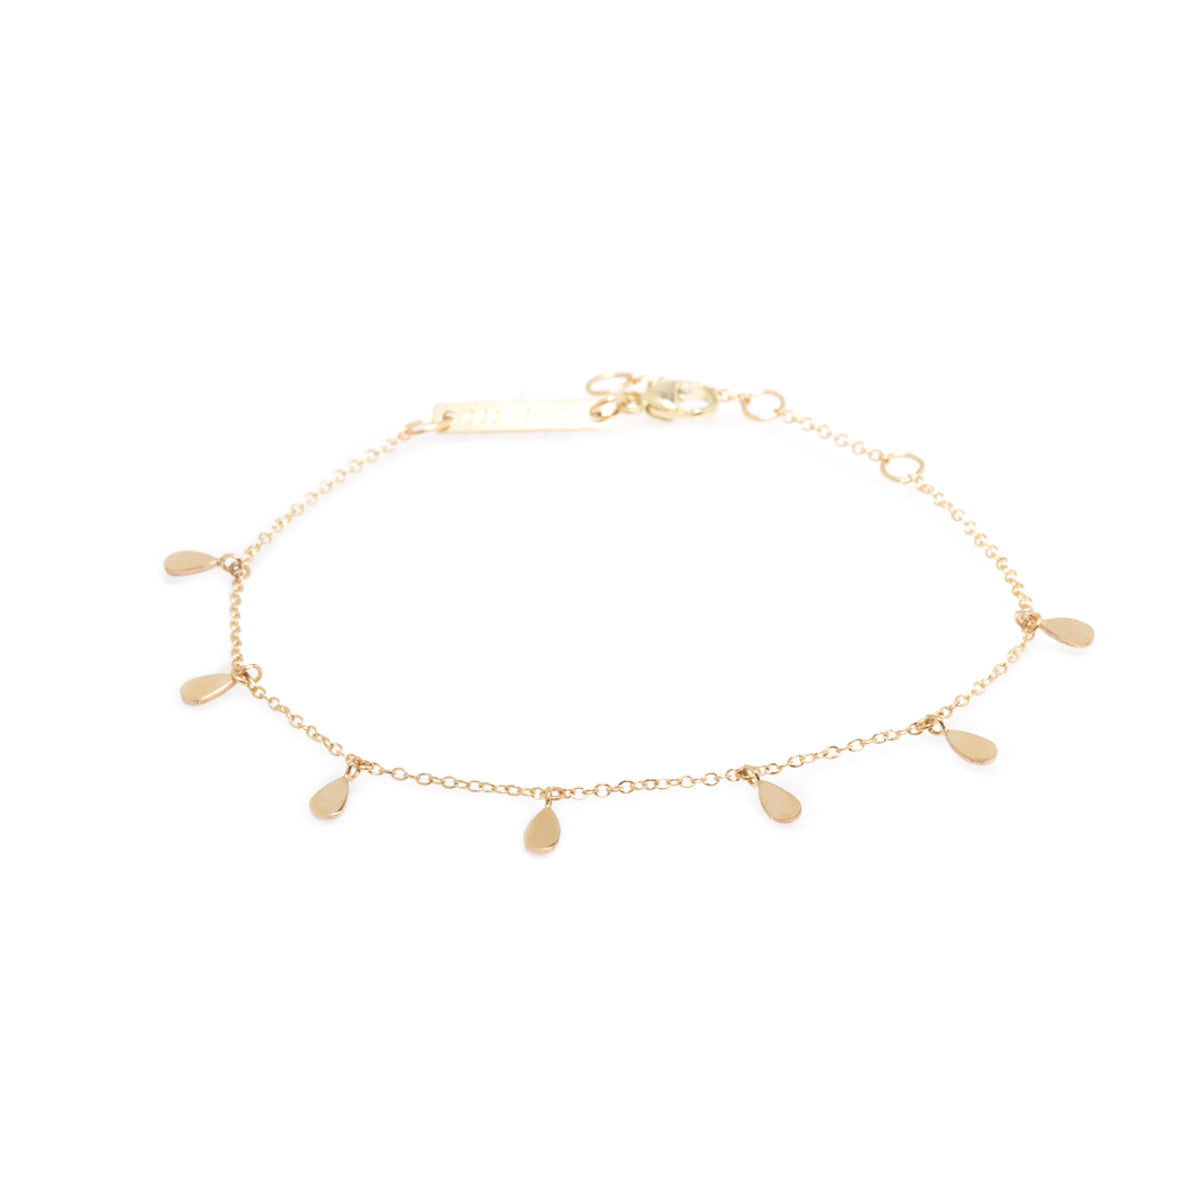 Zoë Chicco 14kt Yellow Gold 7 Itty Bitty Tear Charm Bracelet